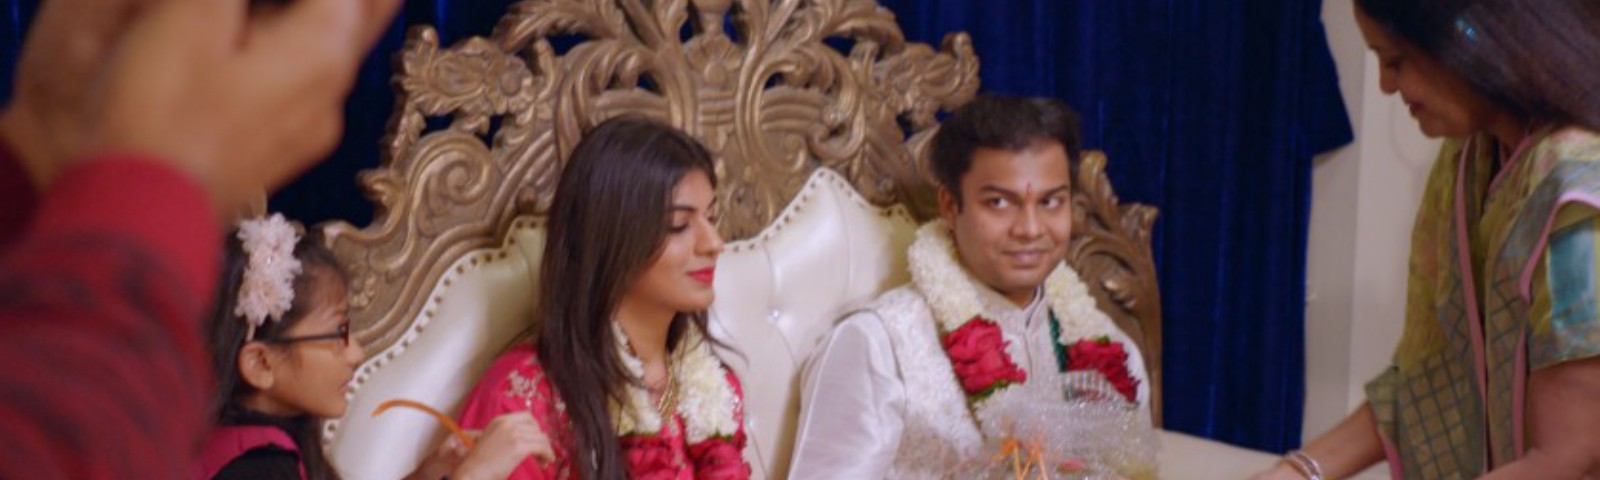 """A screenshot of Radhika and Akshay during their engagement ceremony from the Netflix show """"Indian Matchmaking."""""""